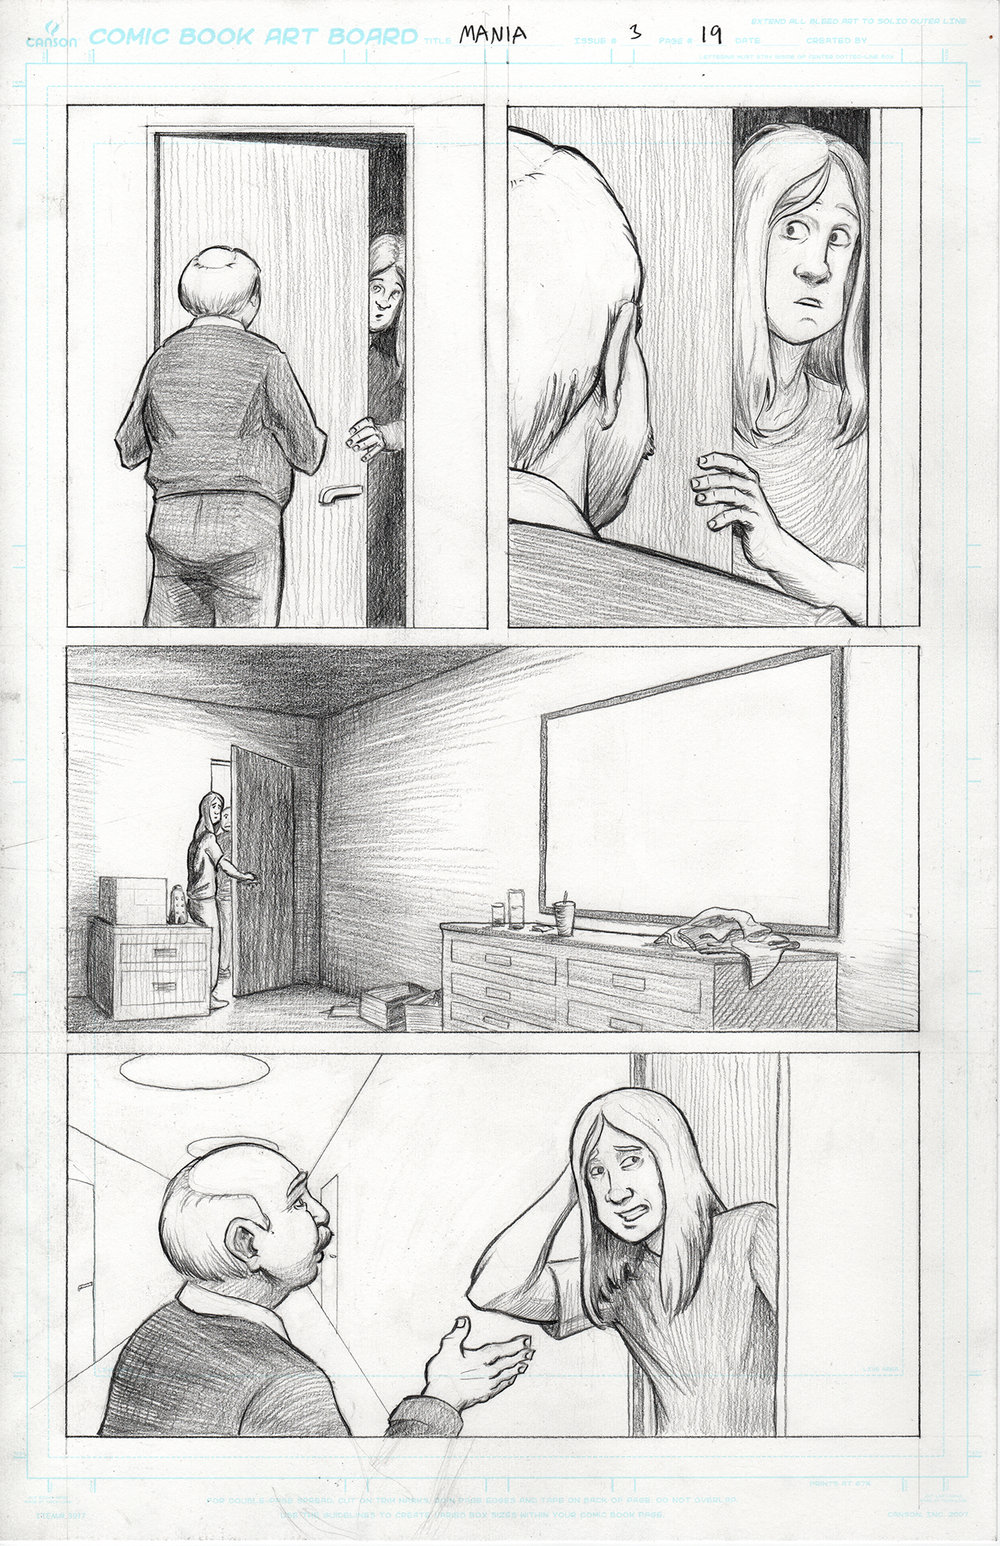 MANIA Issue 3, Page 19